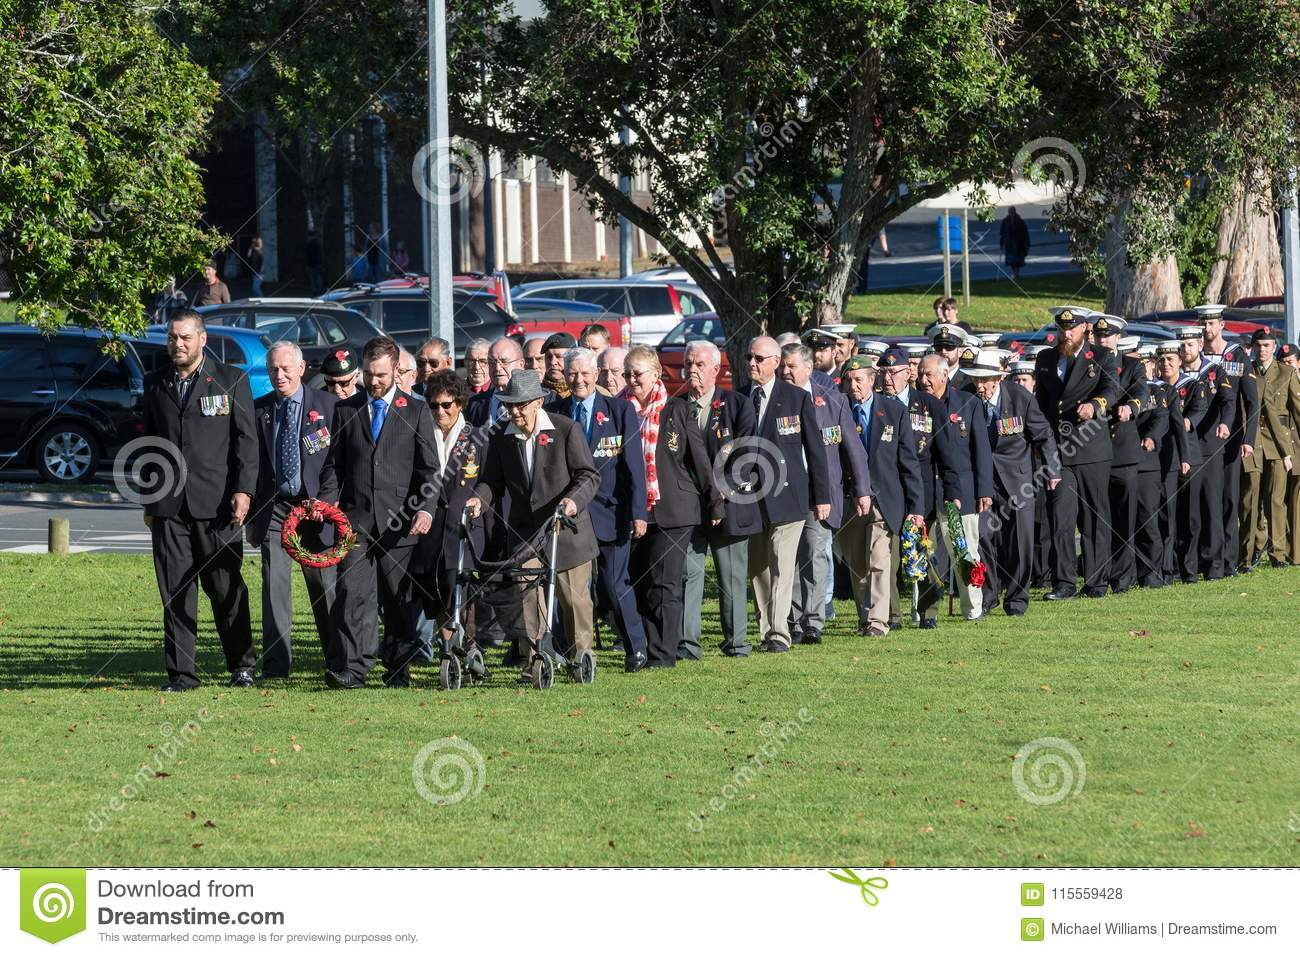 Anzac Day 2018, Tauranga, New Zealand. Veterans and members of the army and navy